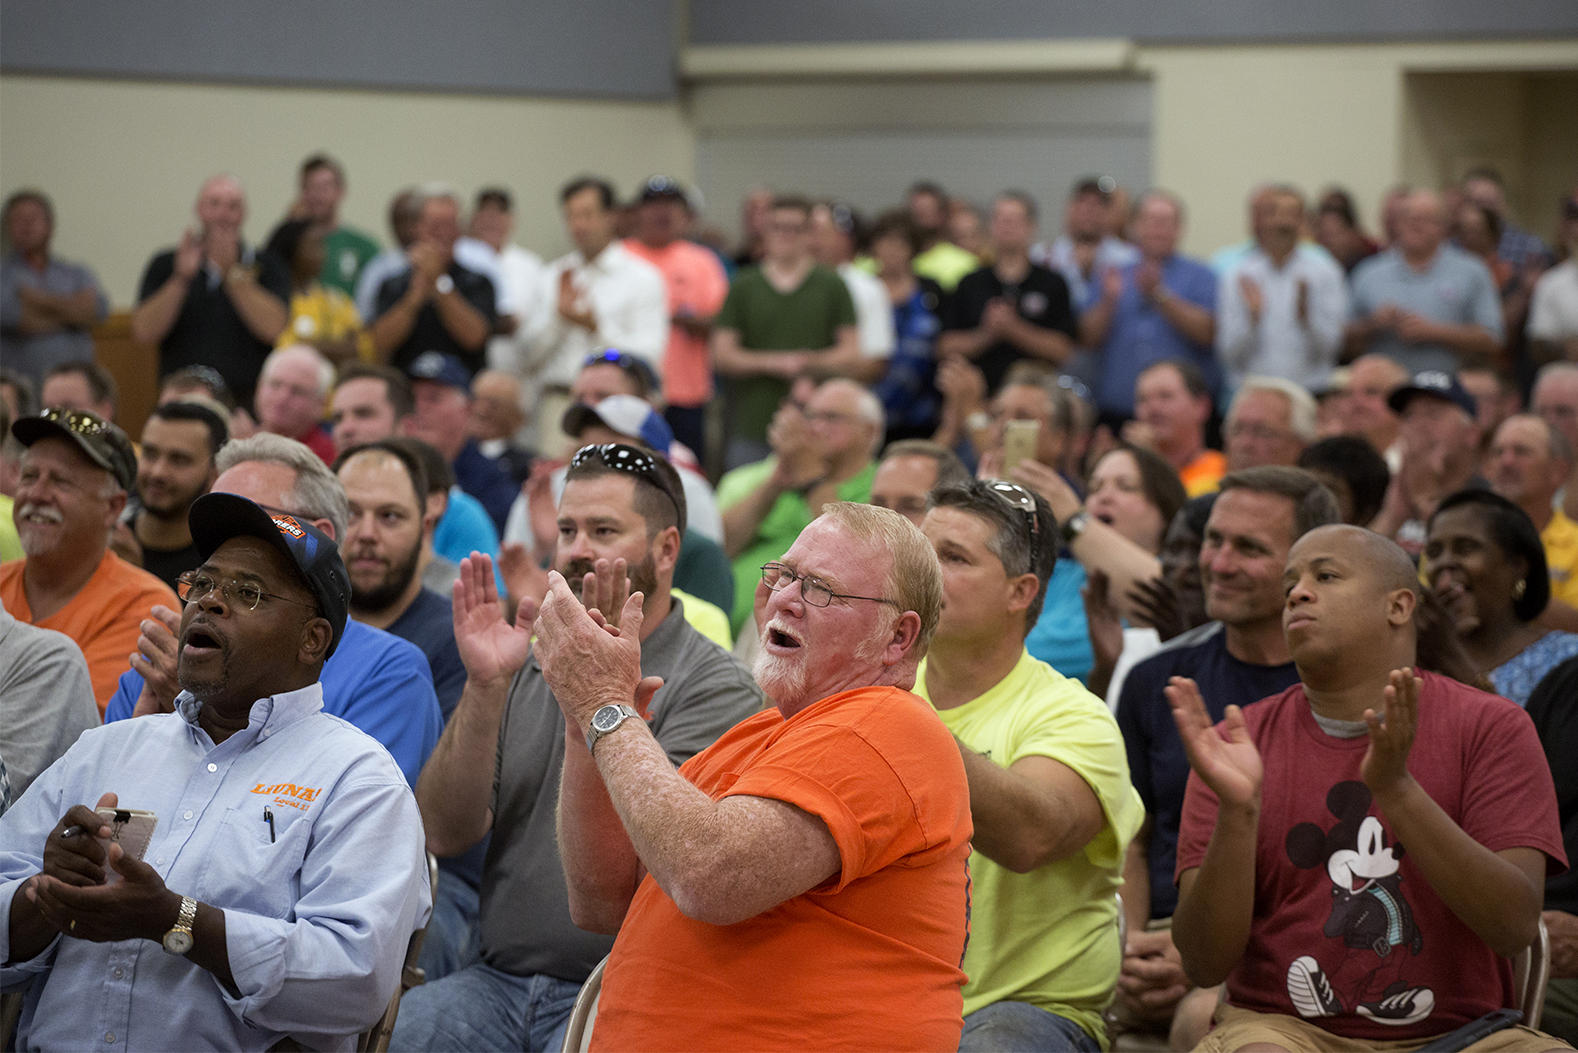 Photo of International Brotherhood of Electrical Workers Hall meeting in St. Louis (Carolina Hidalgo/St. Louis Public Radio)